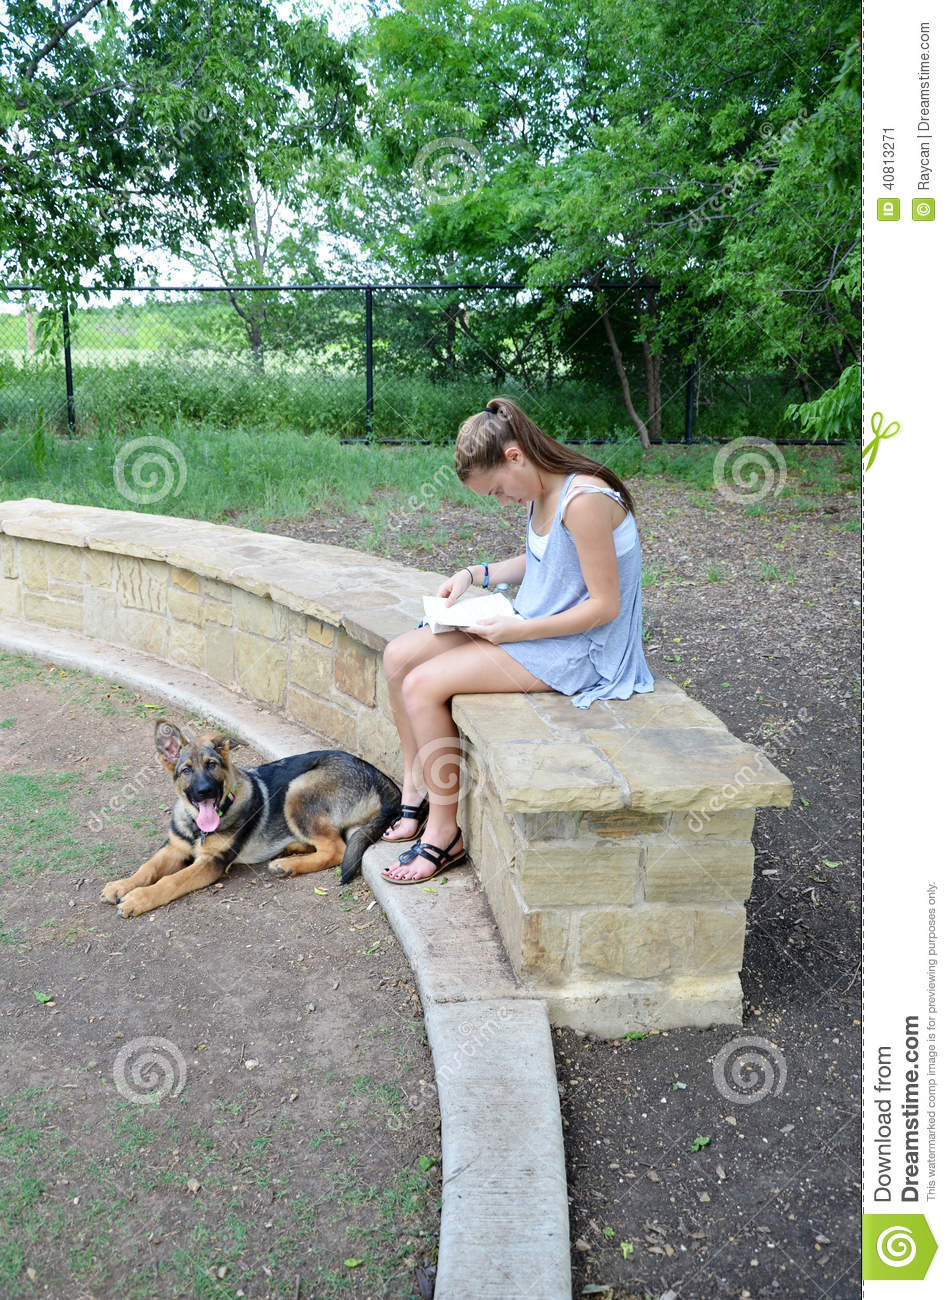 Girl Reading in Park with Dog